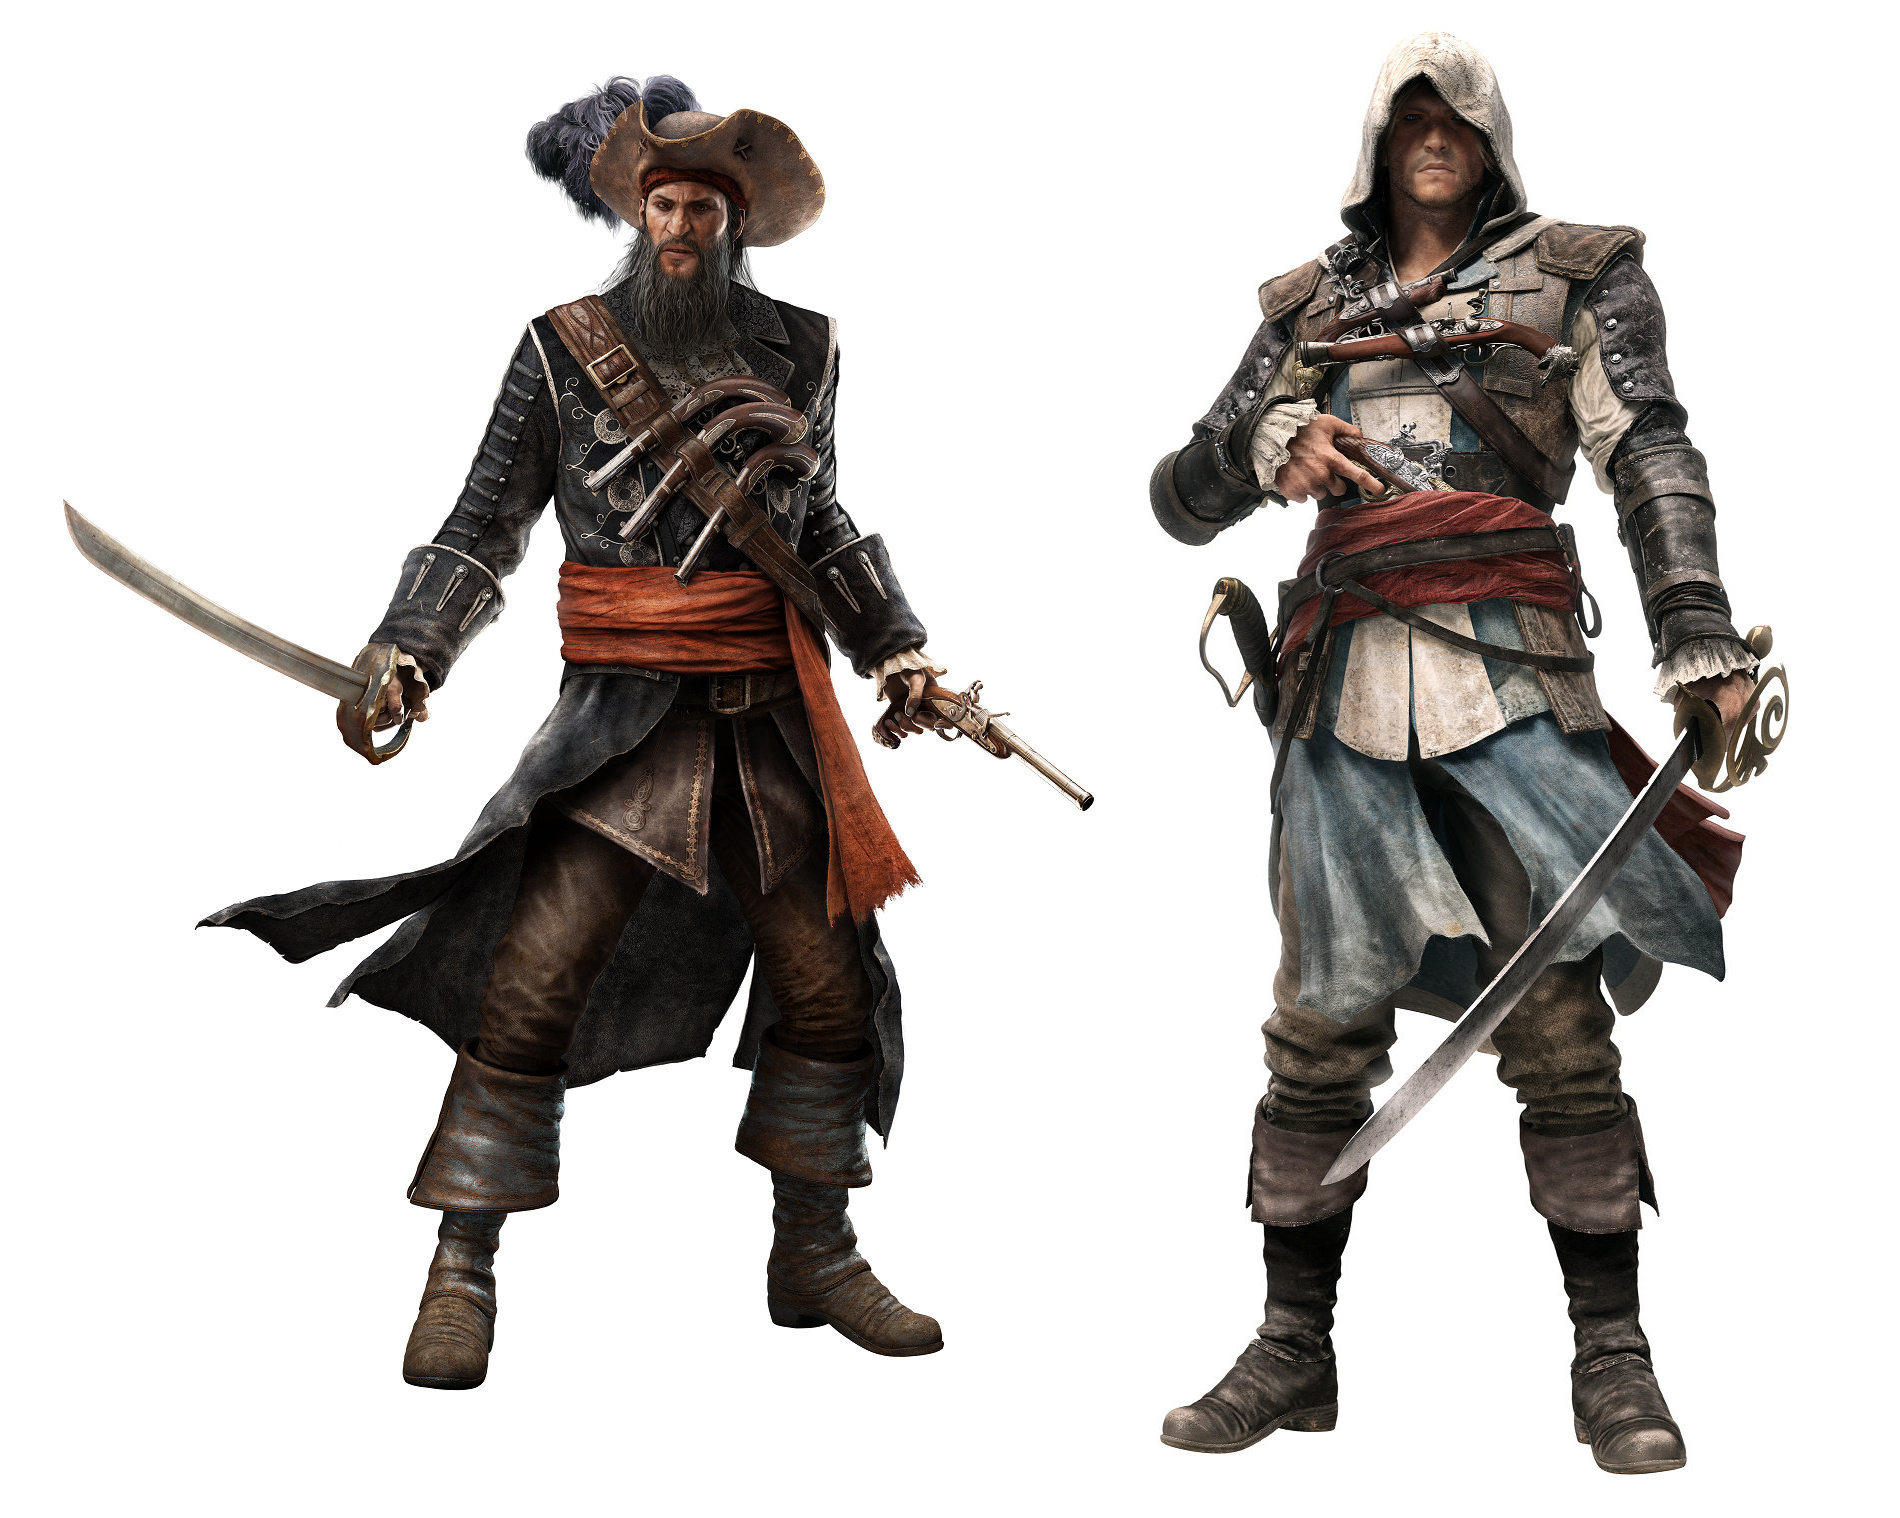 Fencing-Rapier · Pirate CostumesAssassinu0027s CreedFencingDesktop PlusPng.com  - Assassins Creed HD PNG